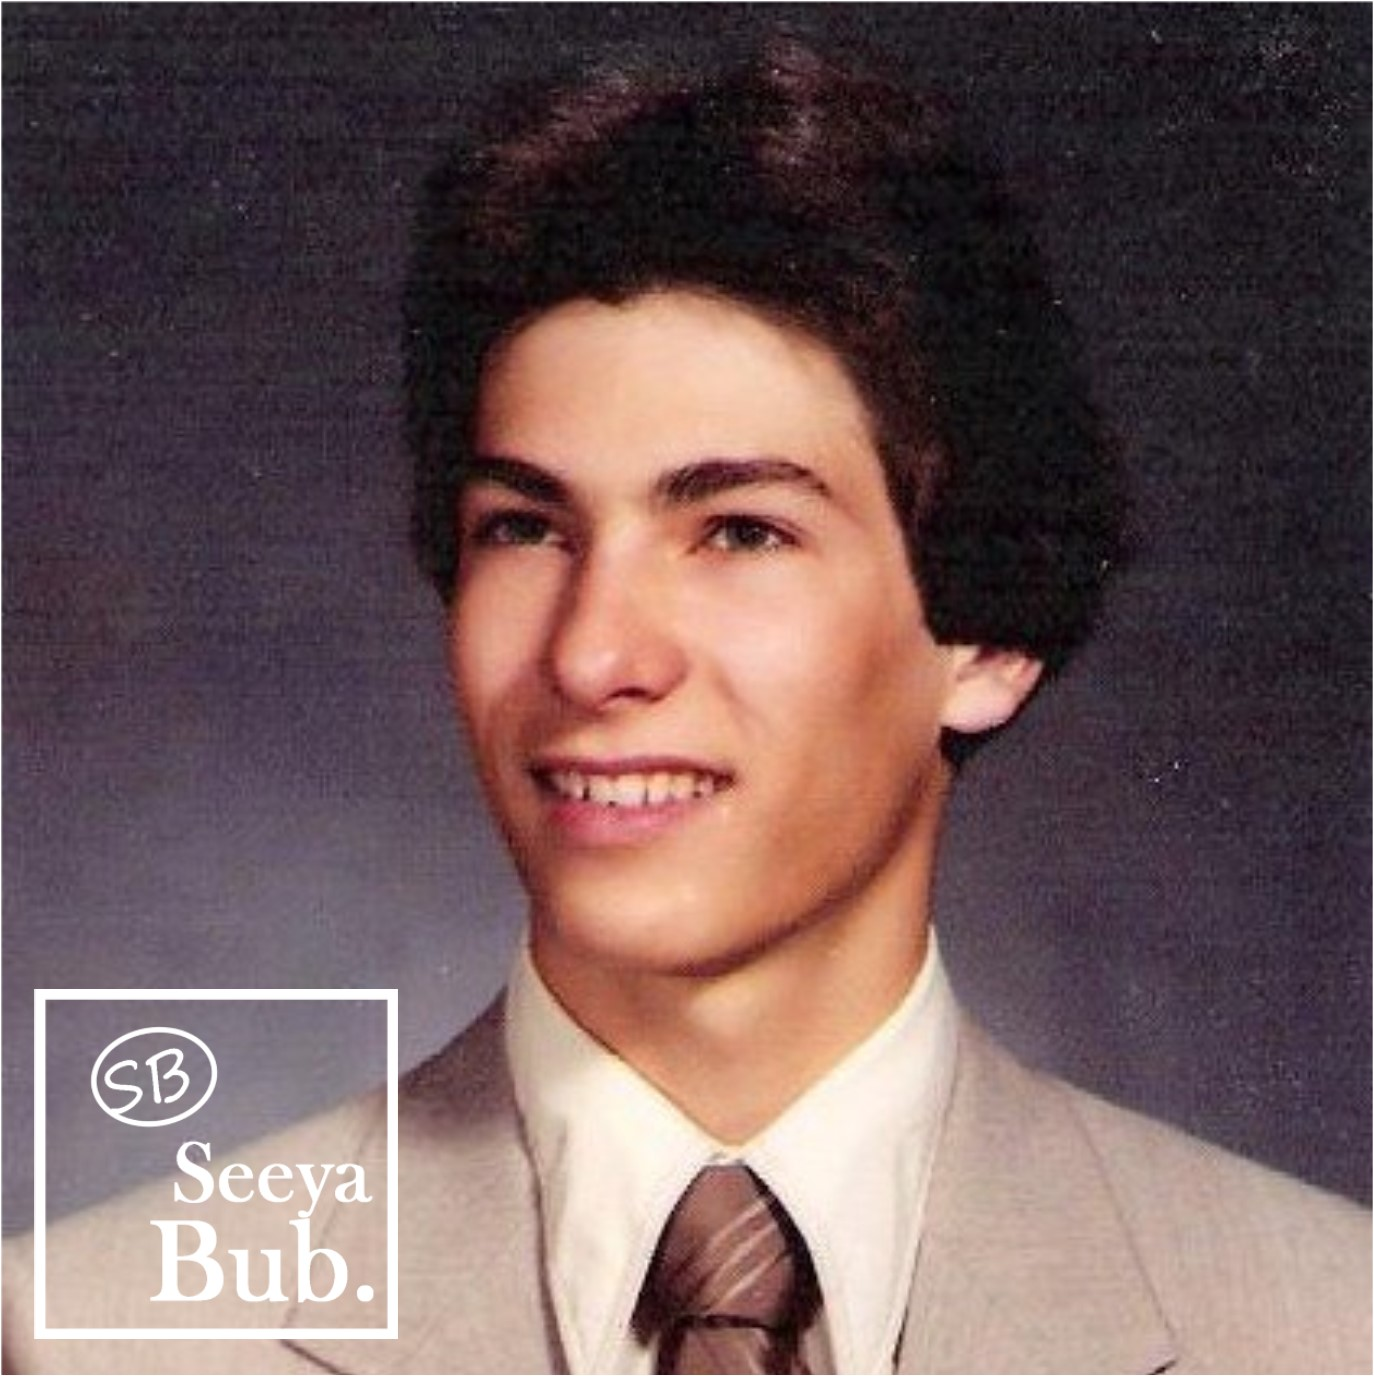 Dad HS Yearbook Photo with SB Logo